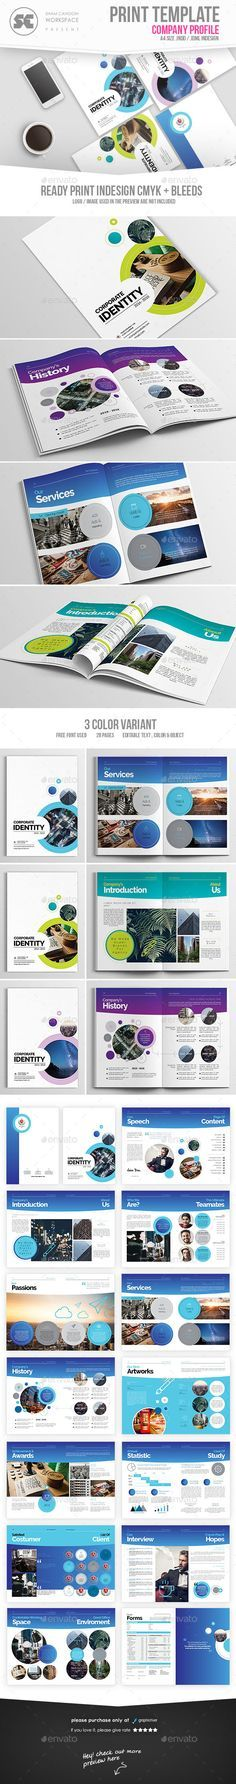 Company Profile  — InDesign Template #agency #branding • Download ➝ https://graphicriver.net/item/company-profile/18379360?ref=pxcr